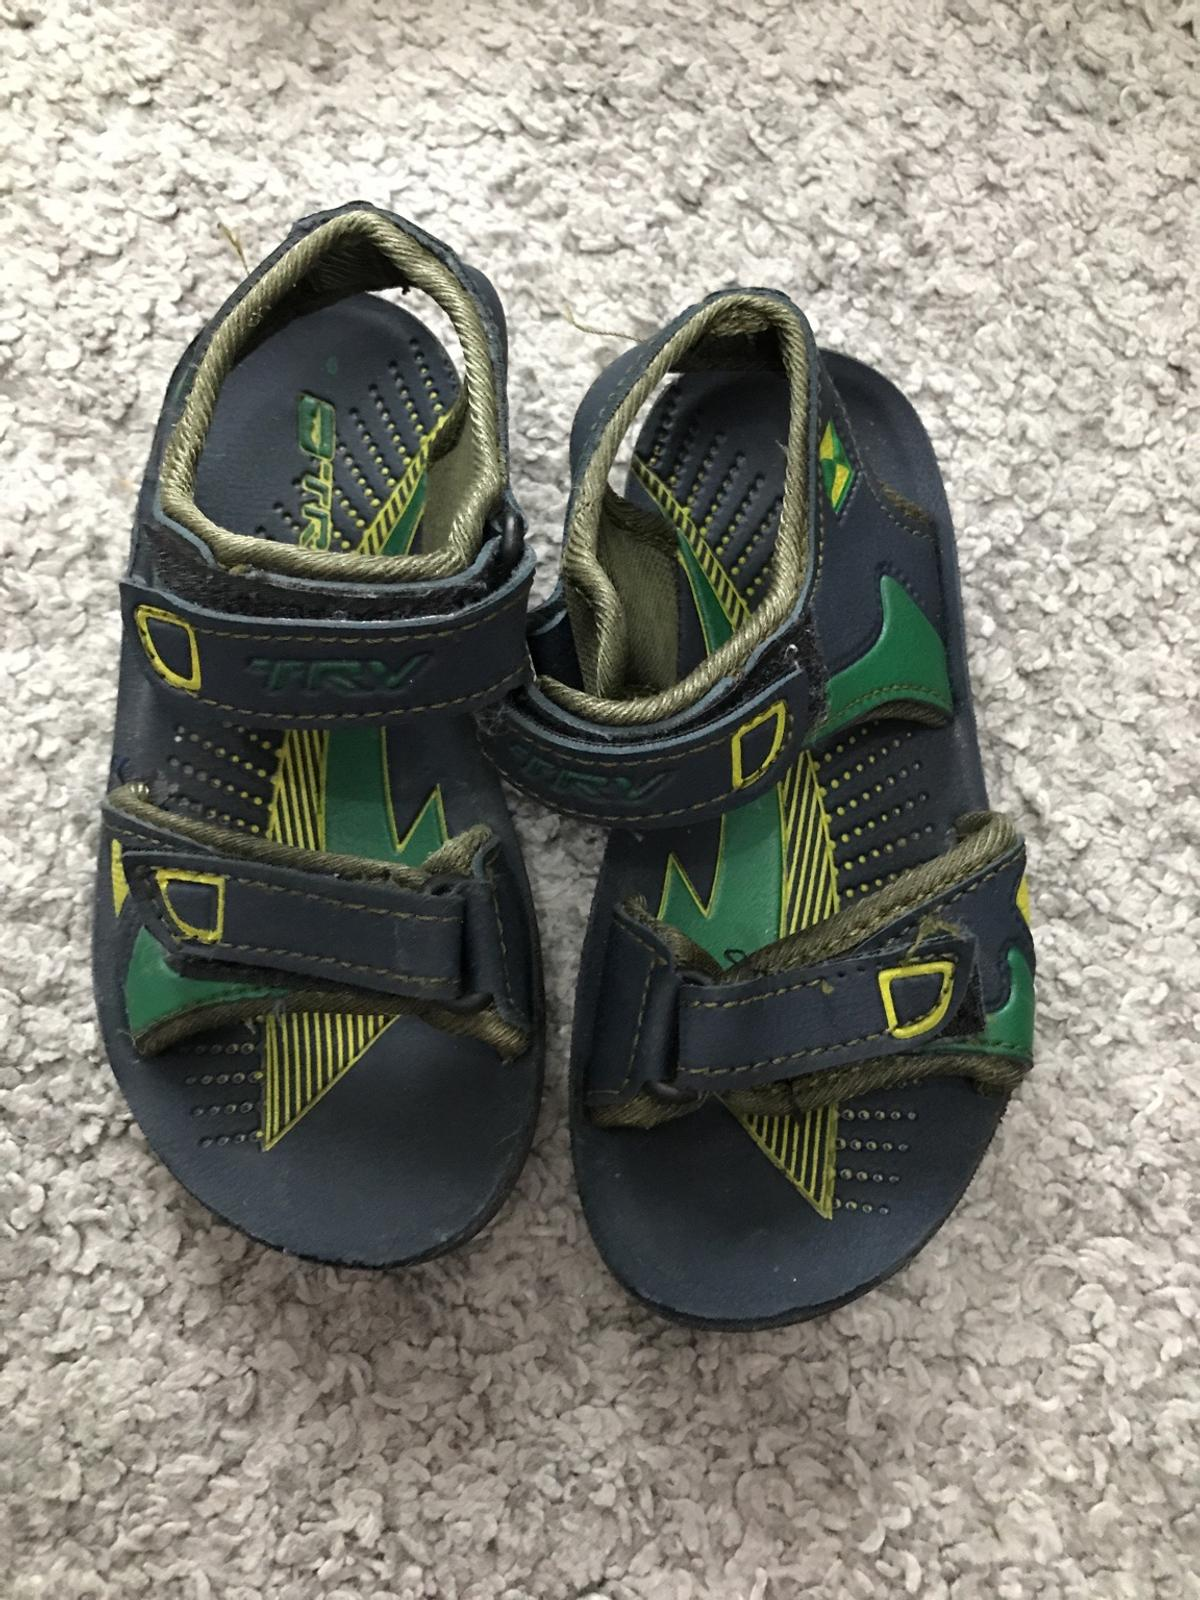 Only used one so fairly new Size 6 kids blue sandals.  Please check page for loads more items for women's men's and kids. No delivery. No more pictures items are sold as seen and are in a good second hand quality.